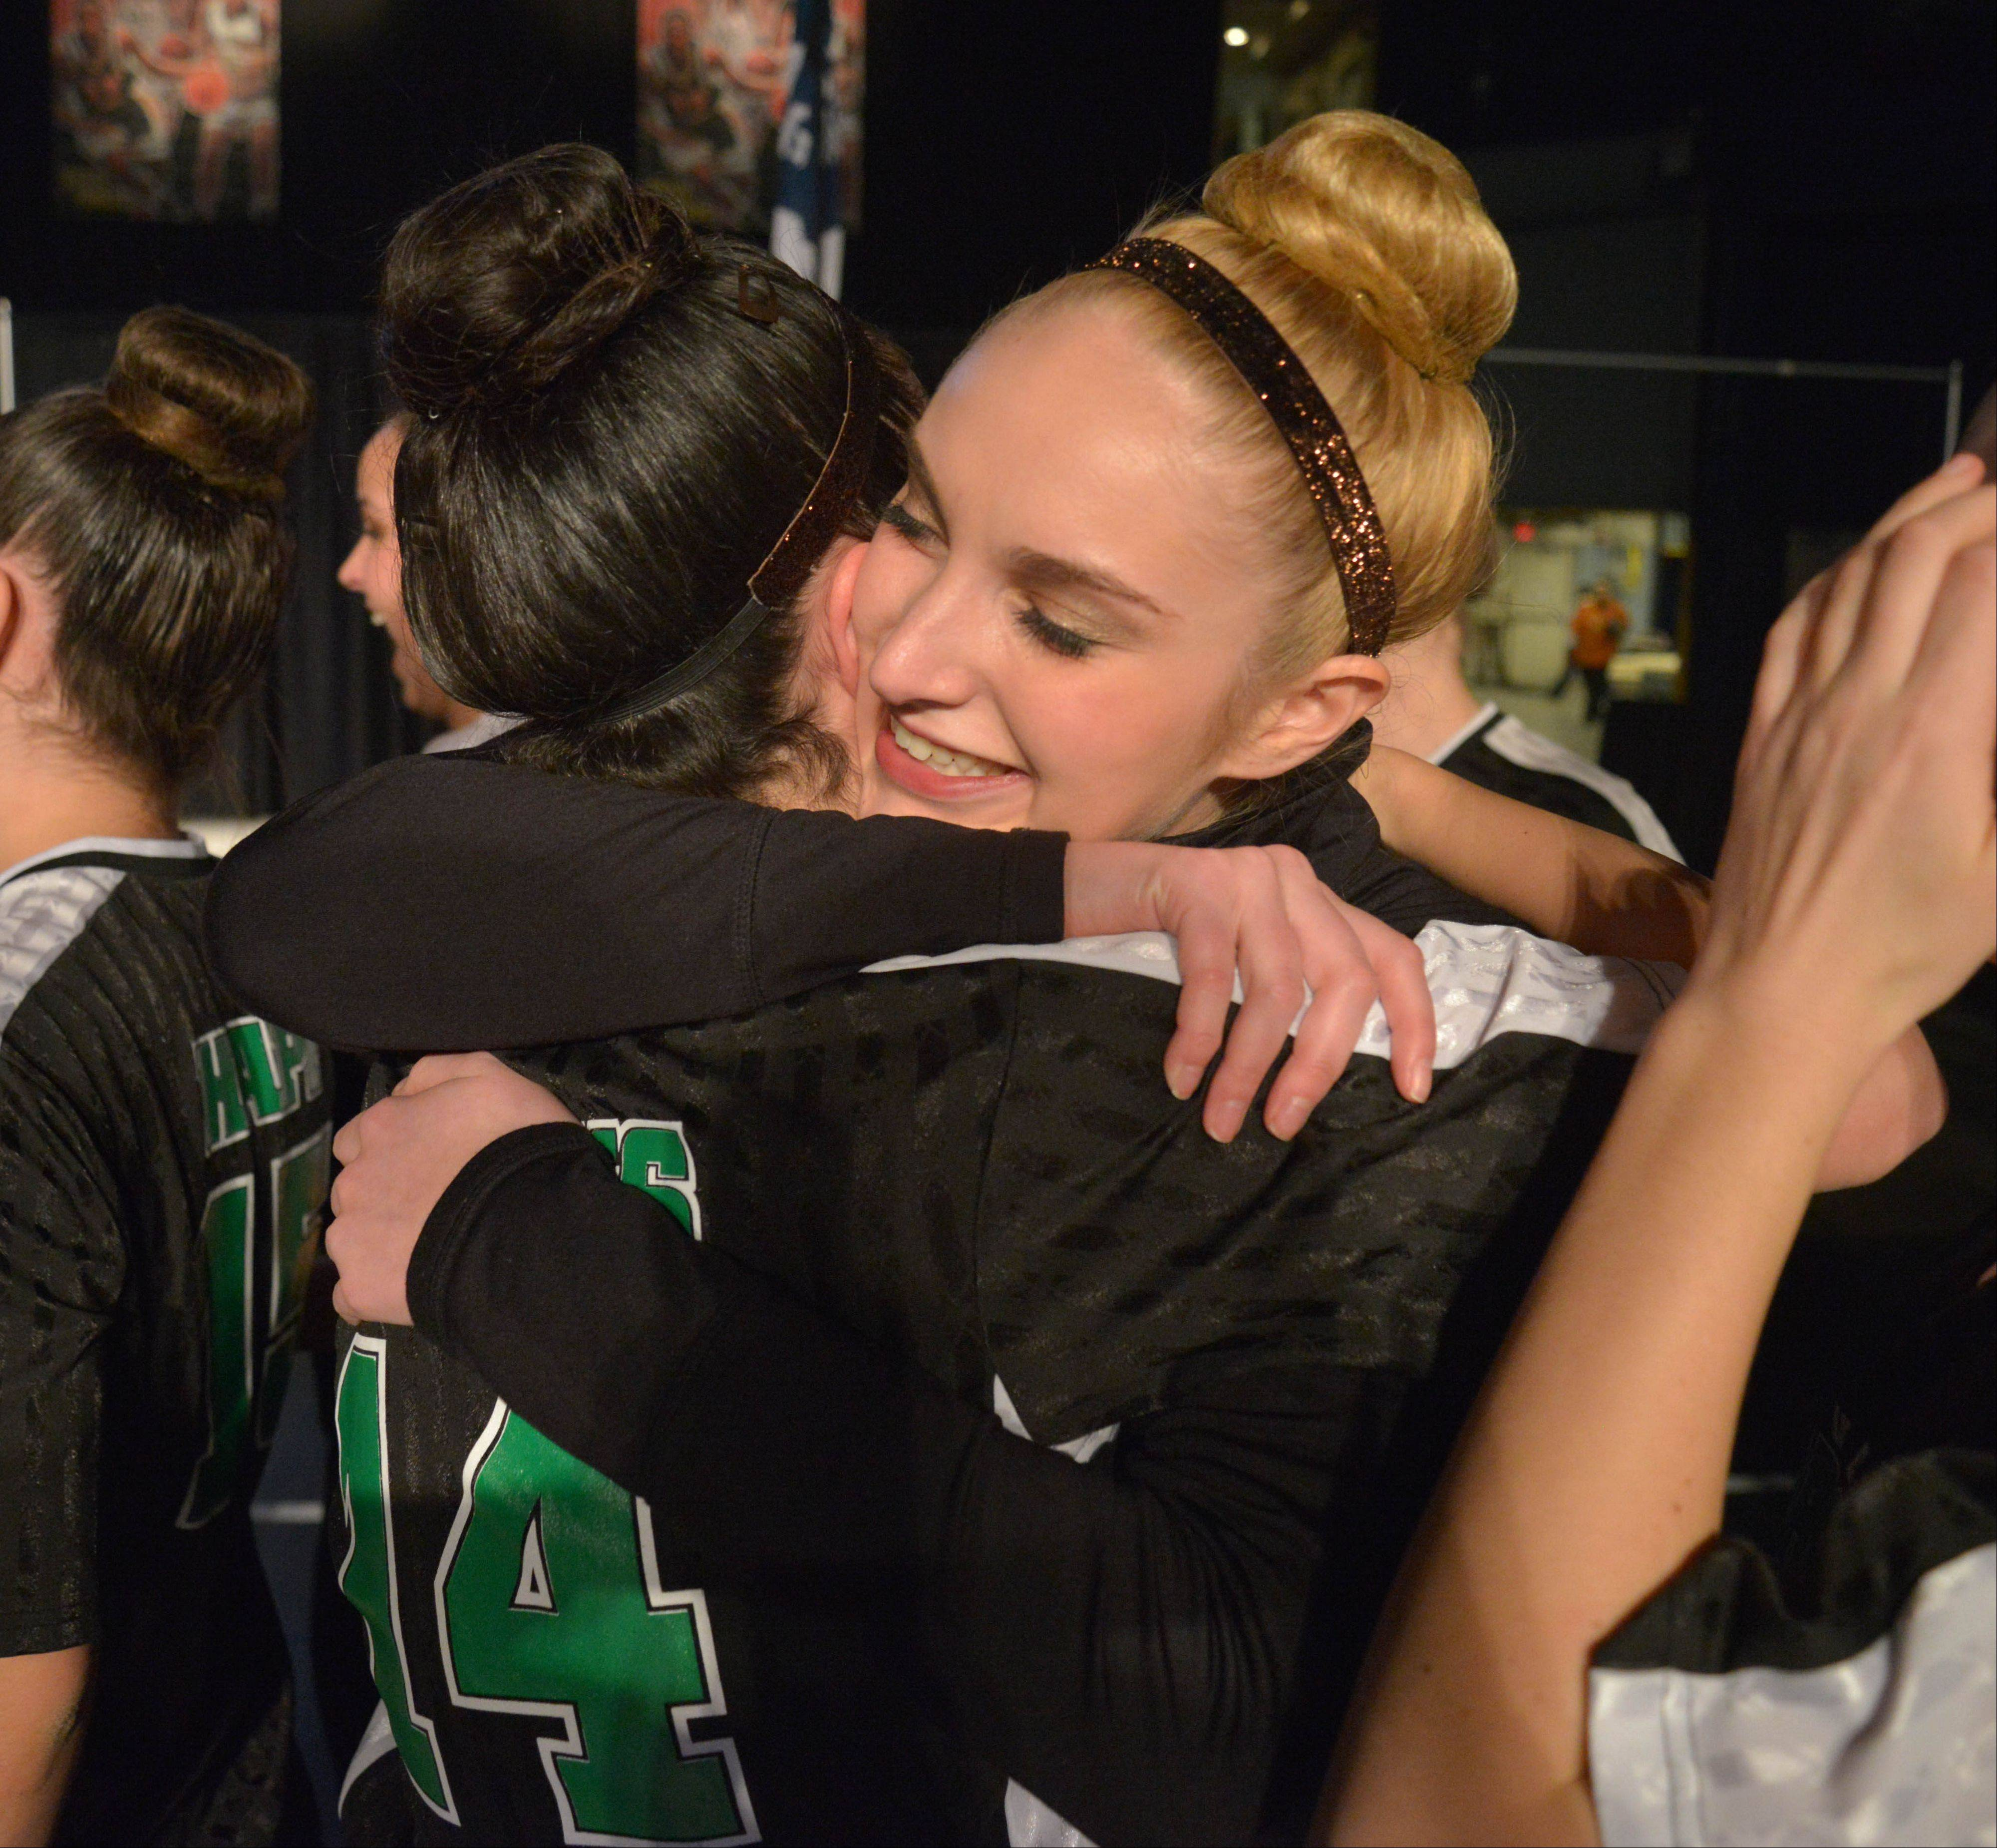 Alison Marks, left, hugs Jenna Puritz both of Stevenson High School after they won 3rd in the 3A IHSA Dance State Final at U.S. Cellular Coliseum in Bloomington Saturday. 90 teams vied for state champion at this event.